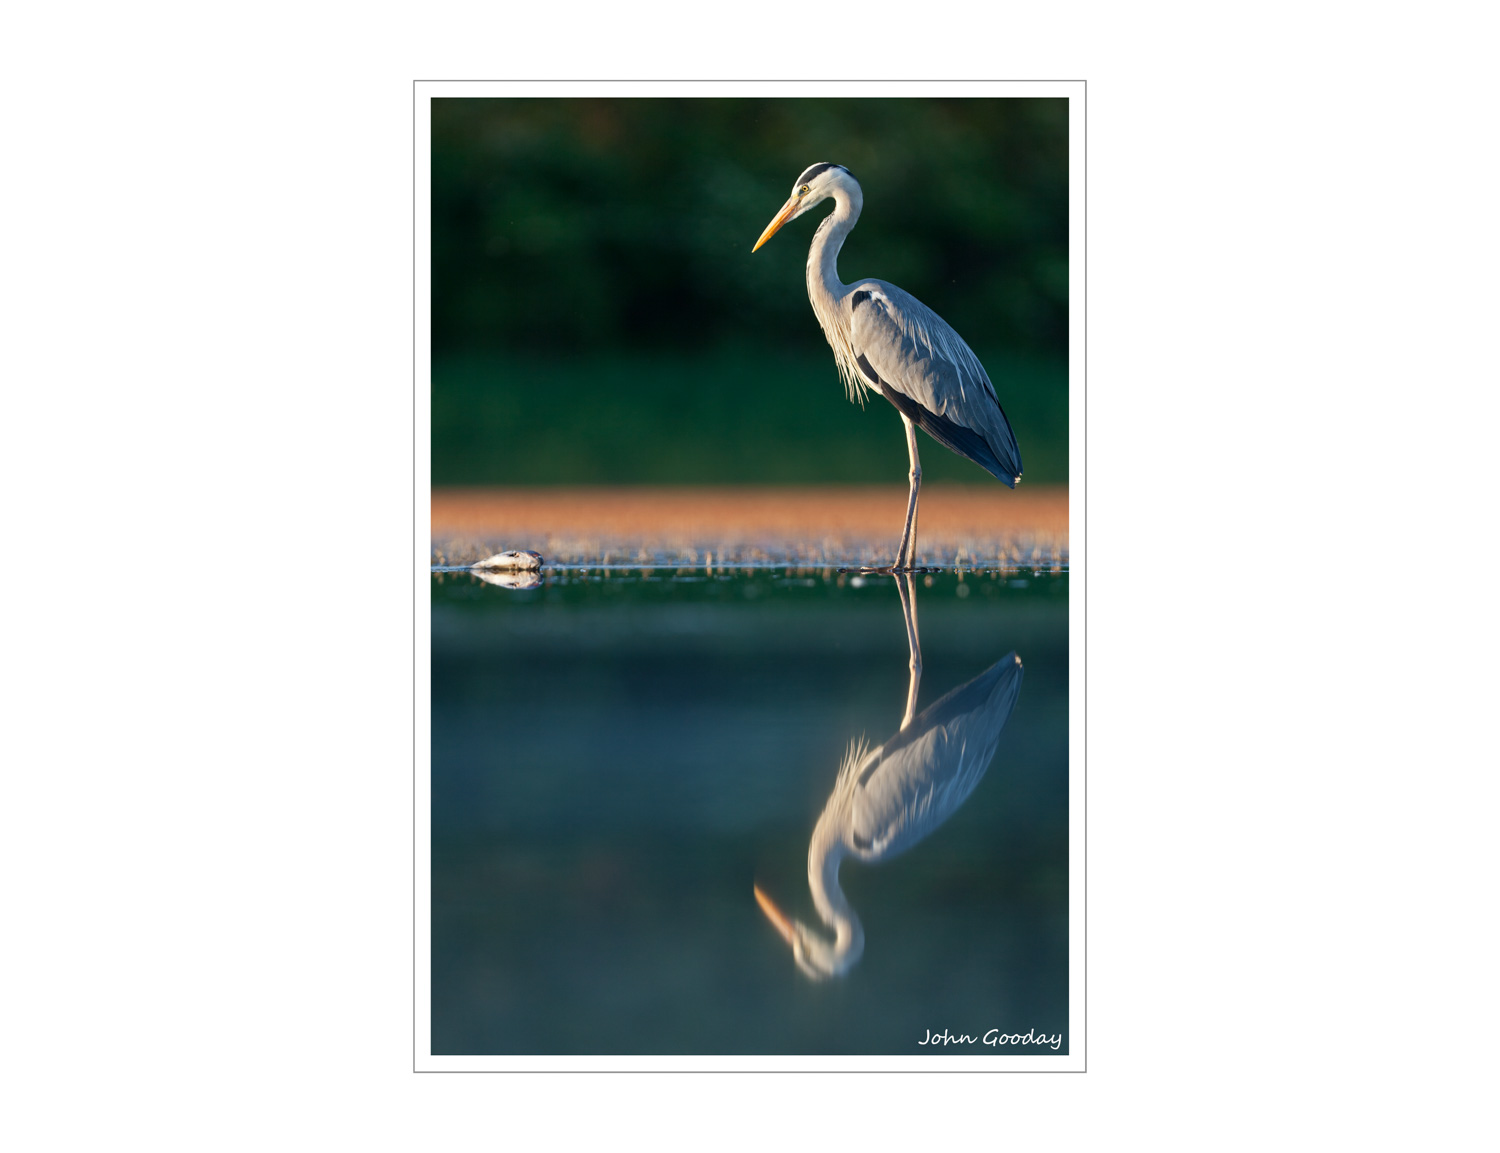 (Image: Grey heron. Canon EOS 5D Mark II, EF300mm f/2.8L IS, 1/320 sec @ f/2.8, ISO 200, tripod, hide).